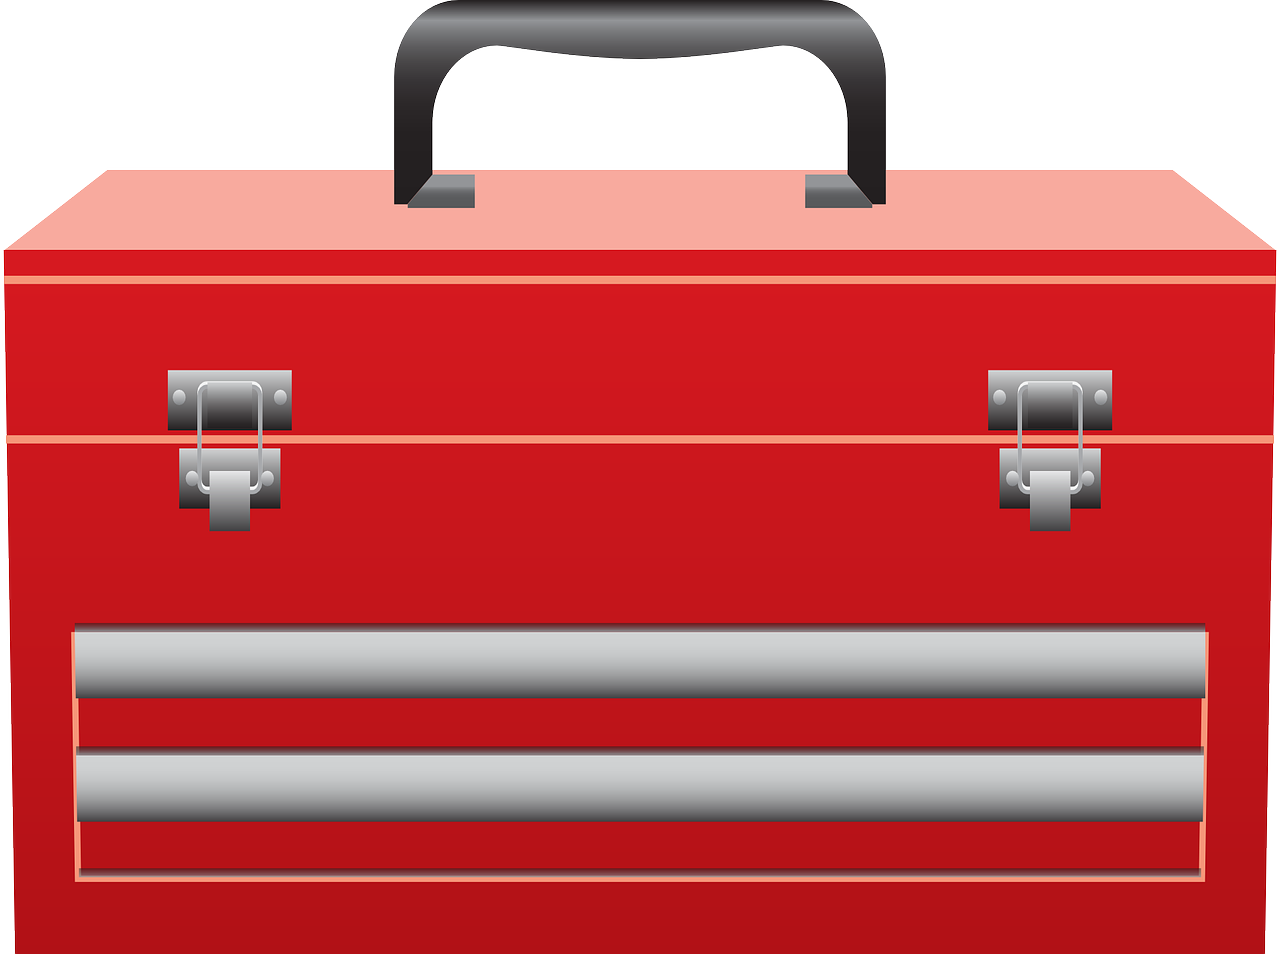 Graphic of a red toolbox